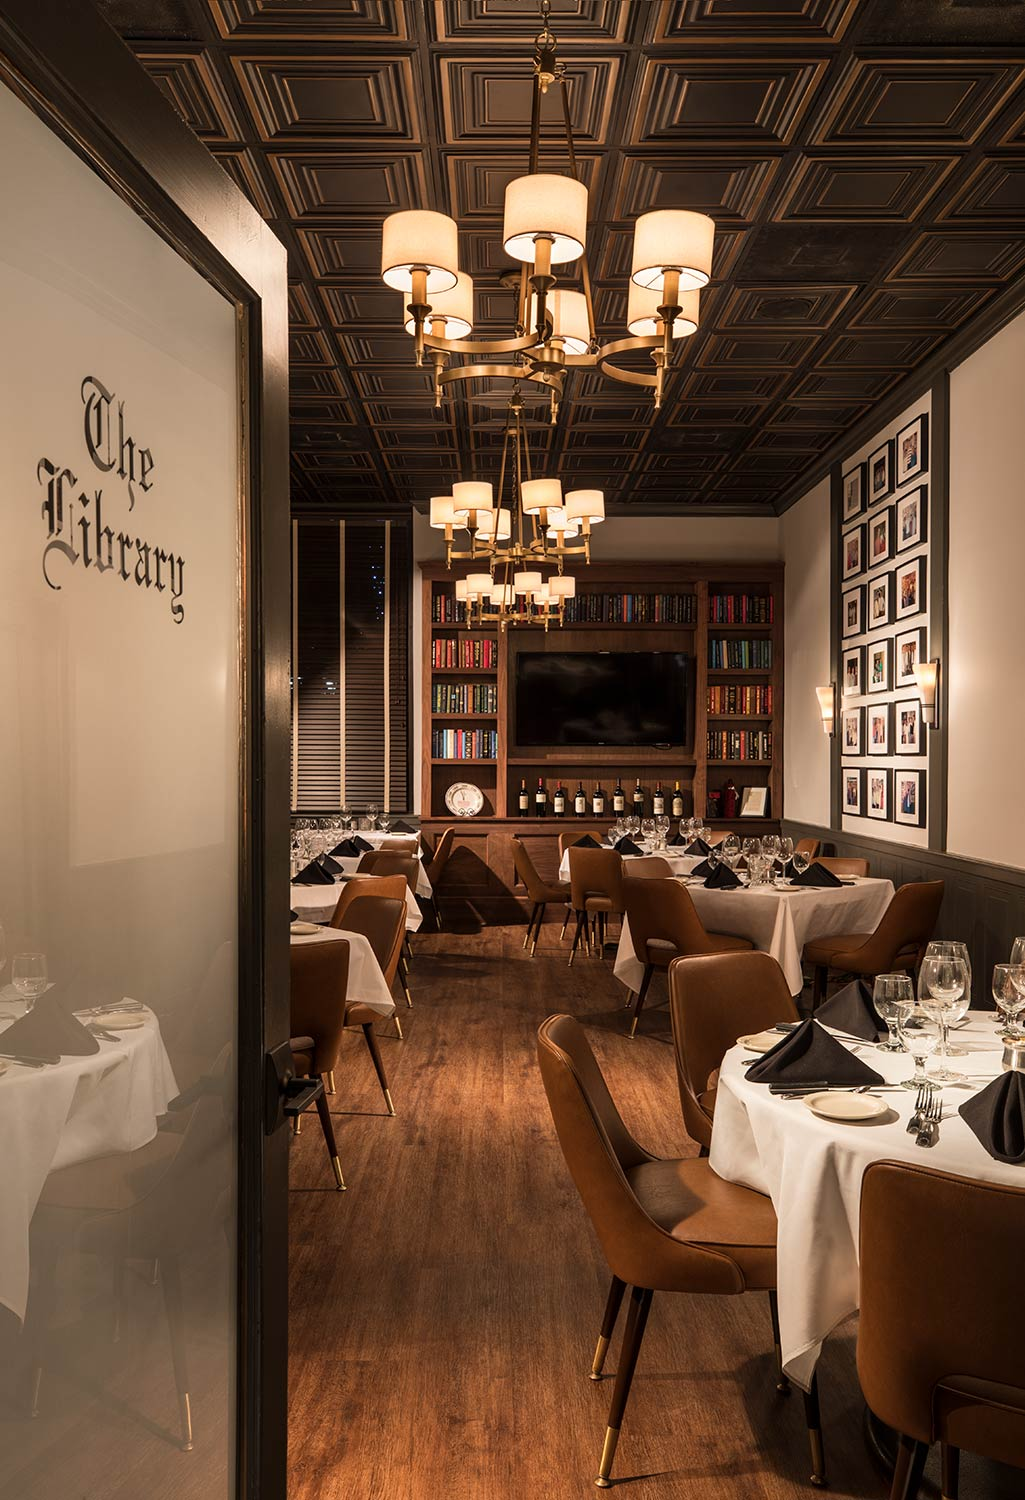 Runyon's Private Dining Room